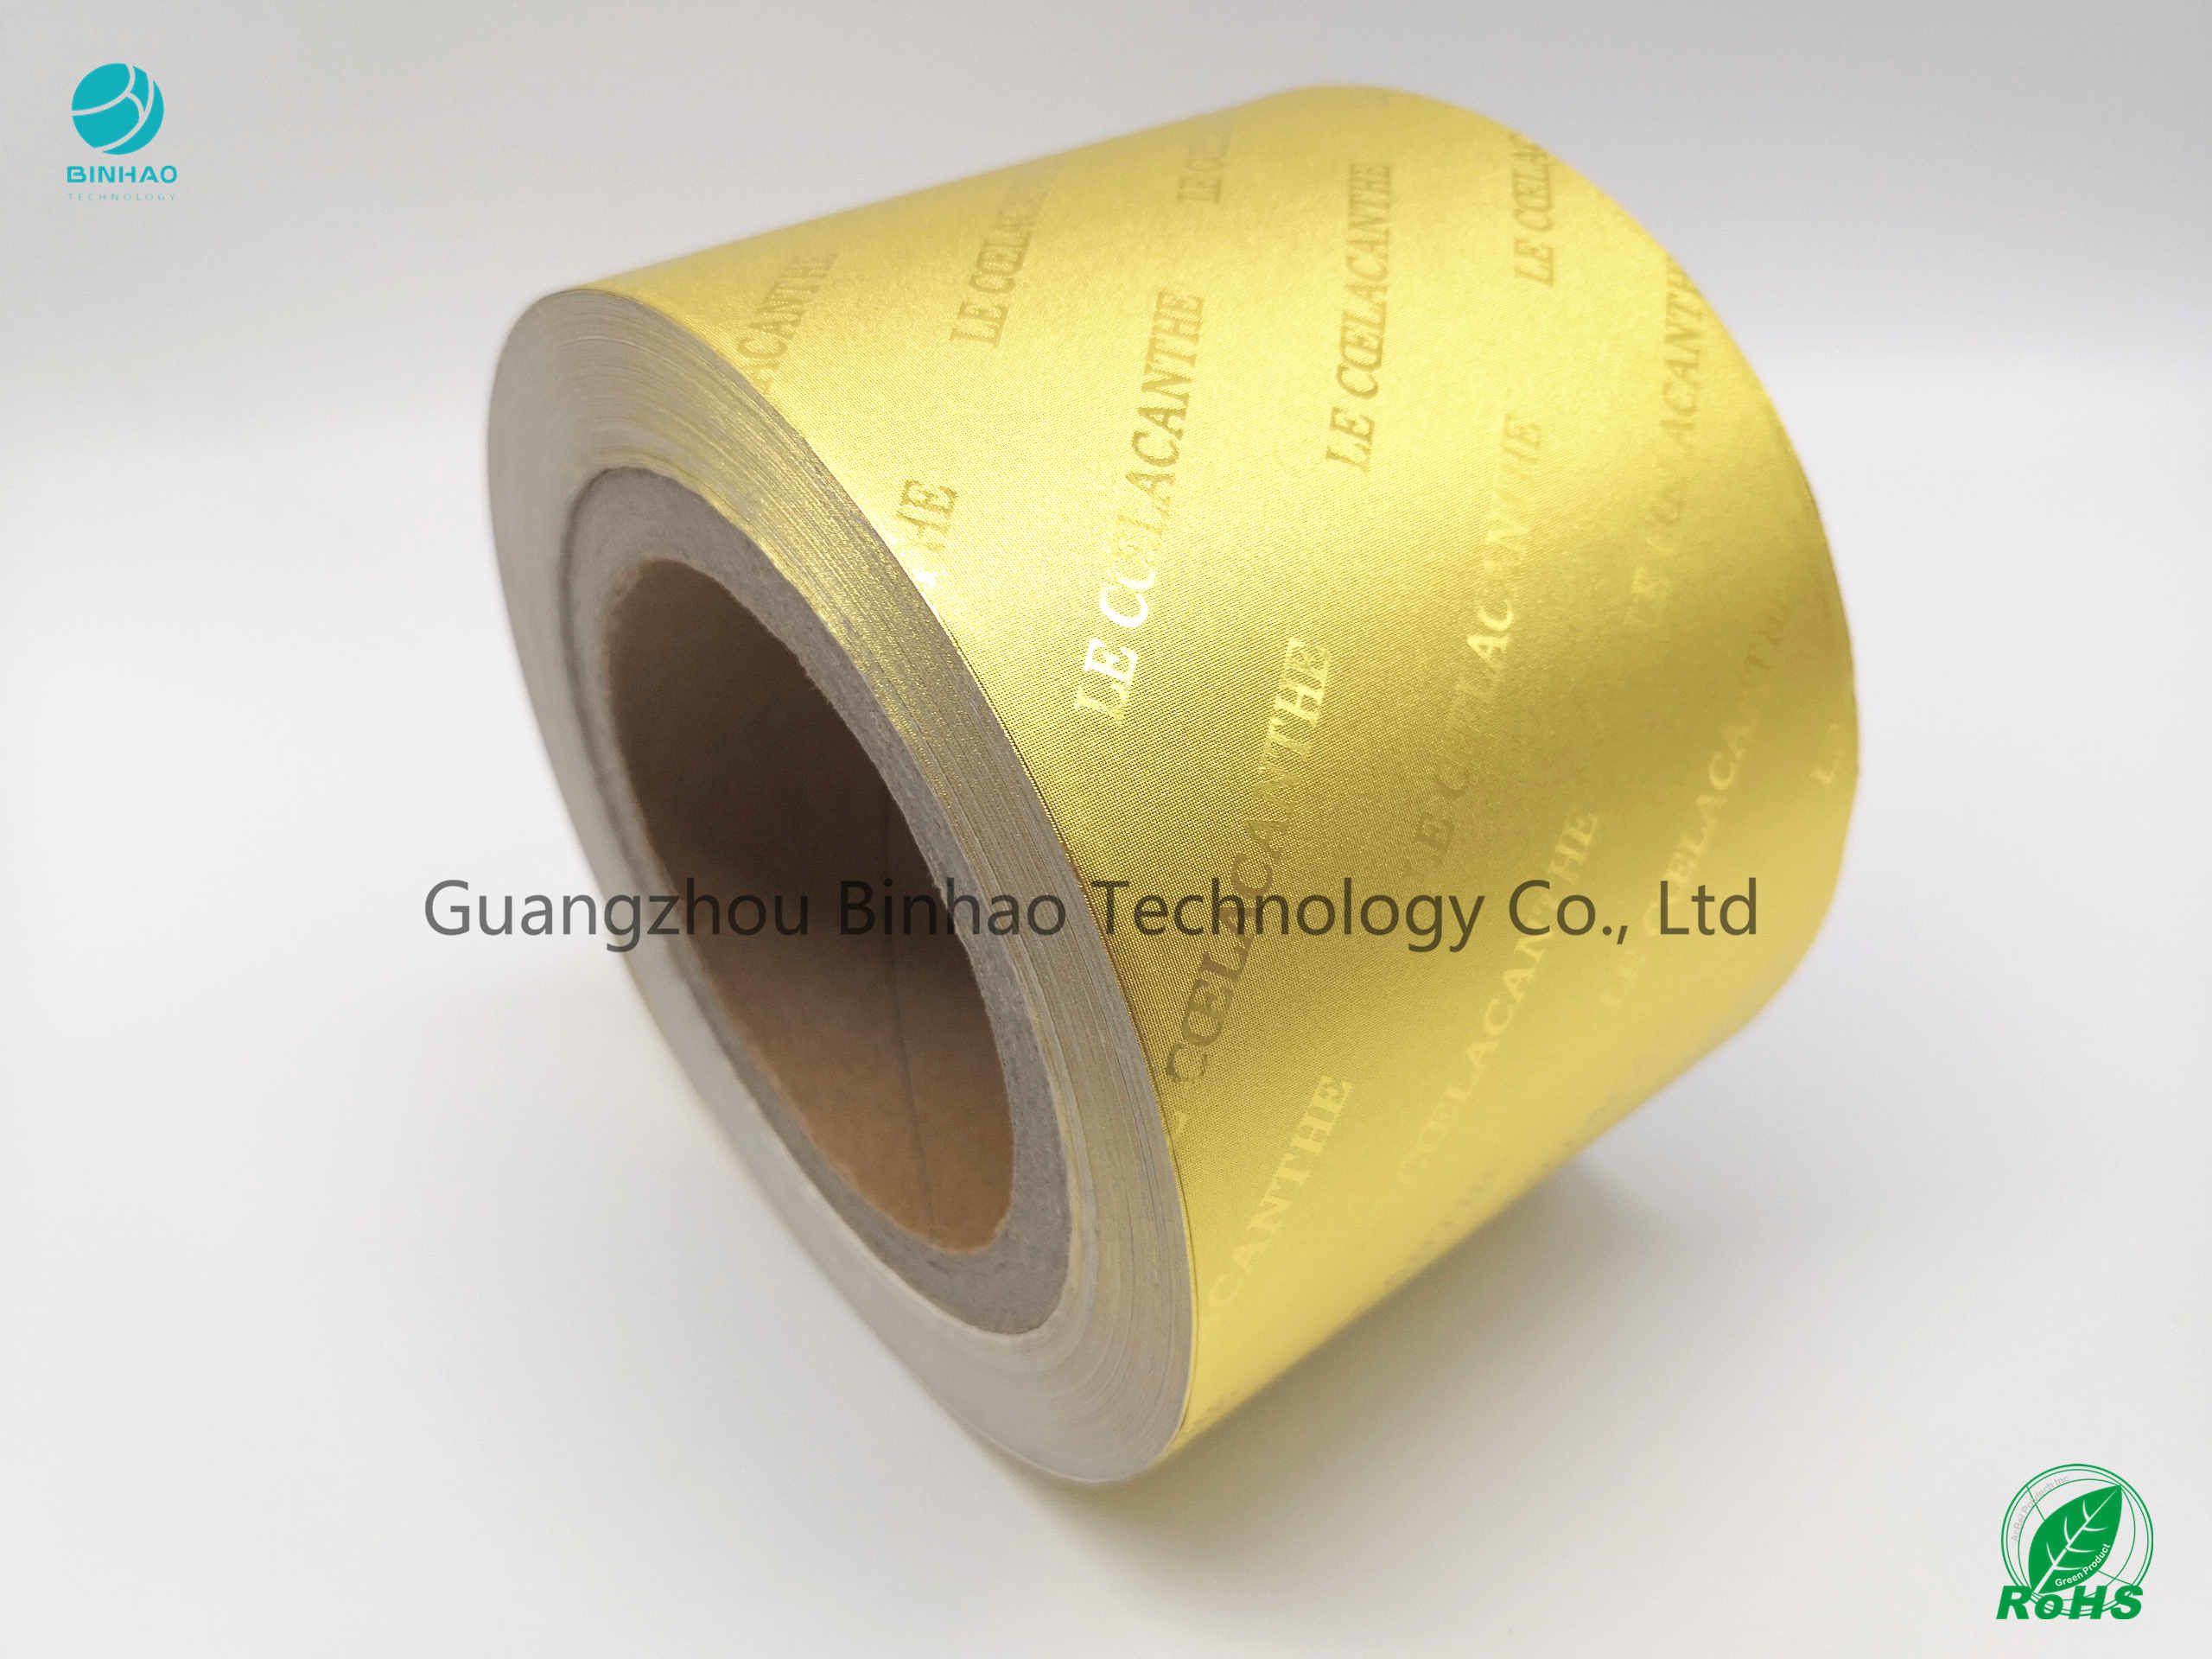 8011 Alloy Food Chocolate Cigarette Golden Frosting Surface Aluminum Laminated Foil Paper